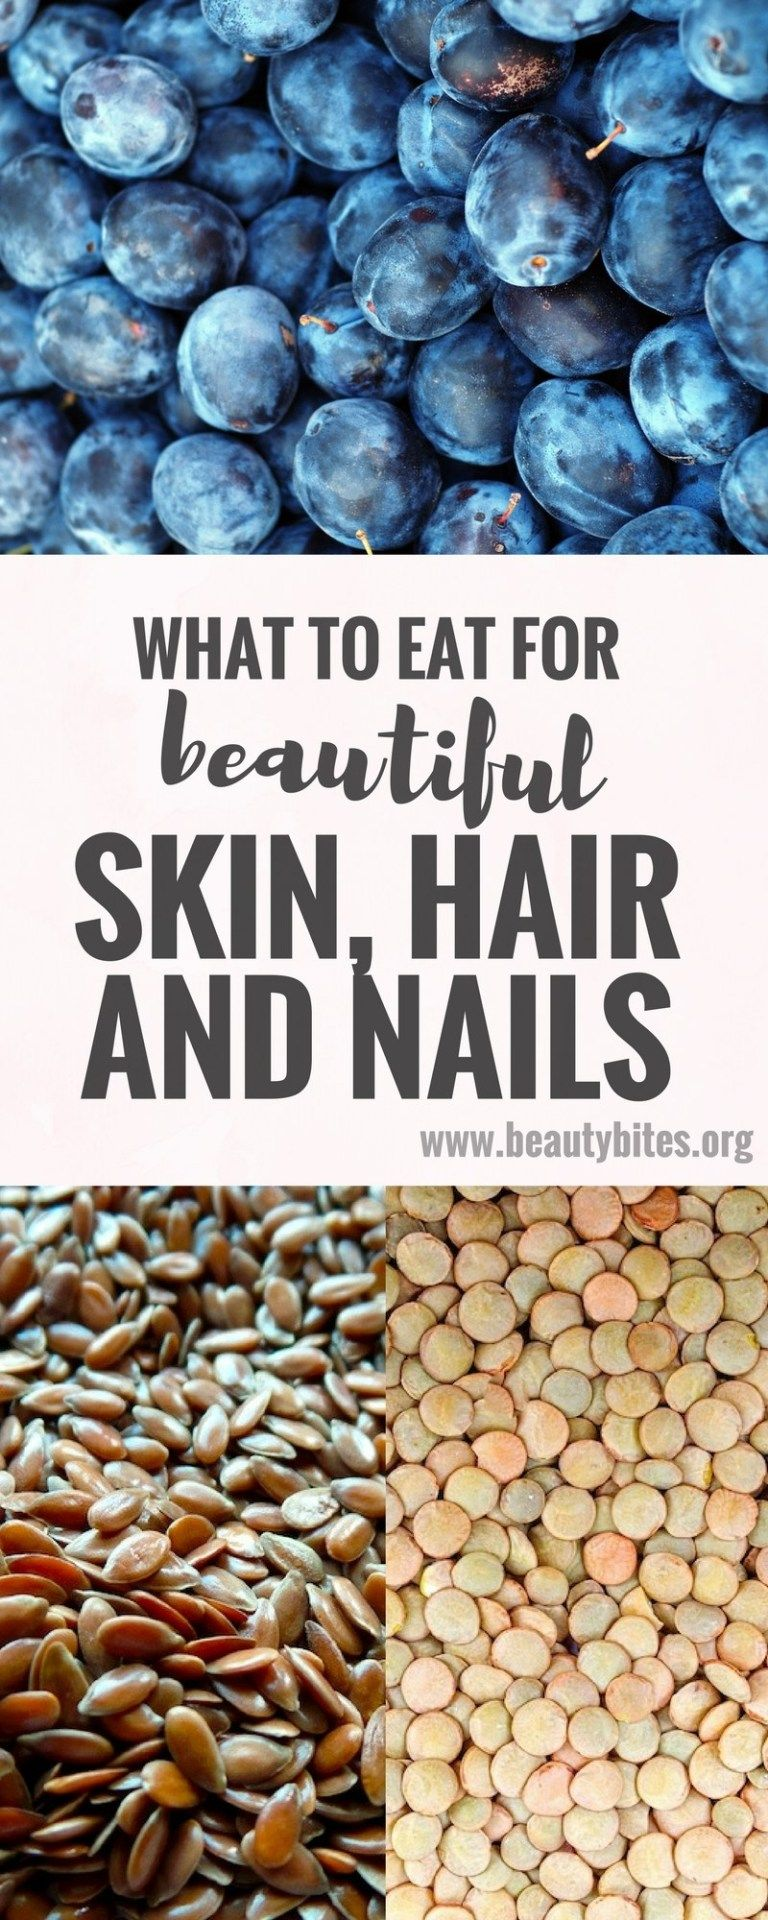 What To Eat for Beautiful Skin, Hair and Nails - Beauty Bites #hairhowtoget